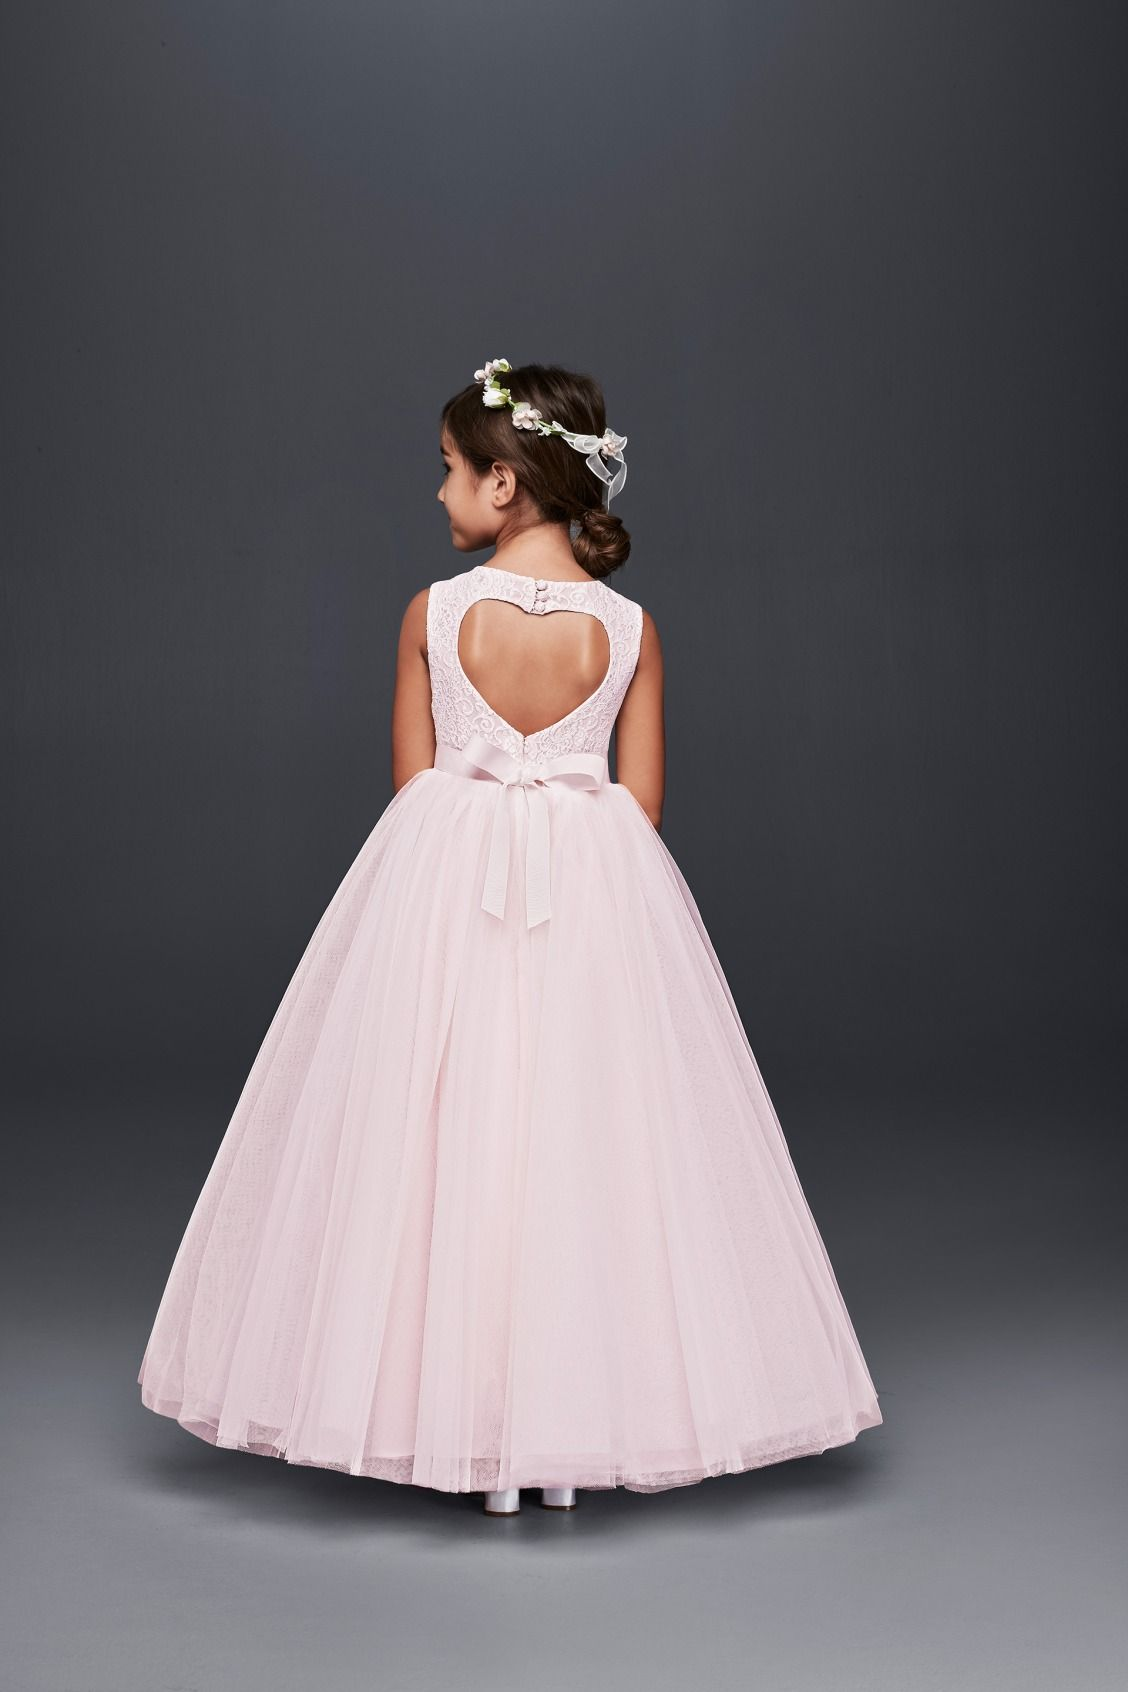 For The Little Sweetheart A Heart Cut Out Pink Ball Gown Flower